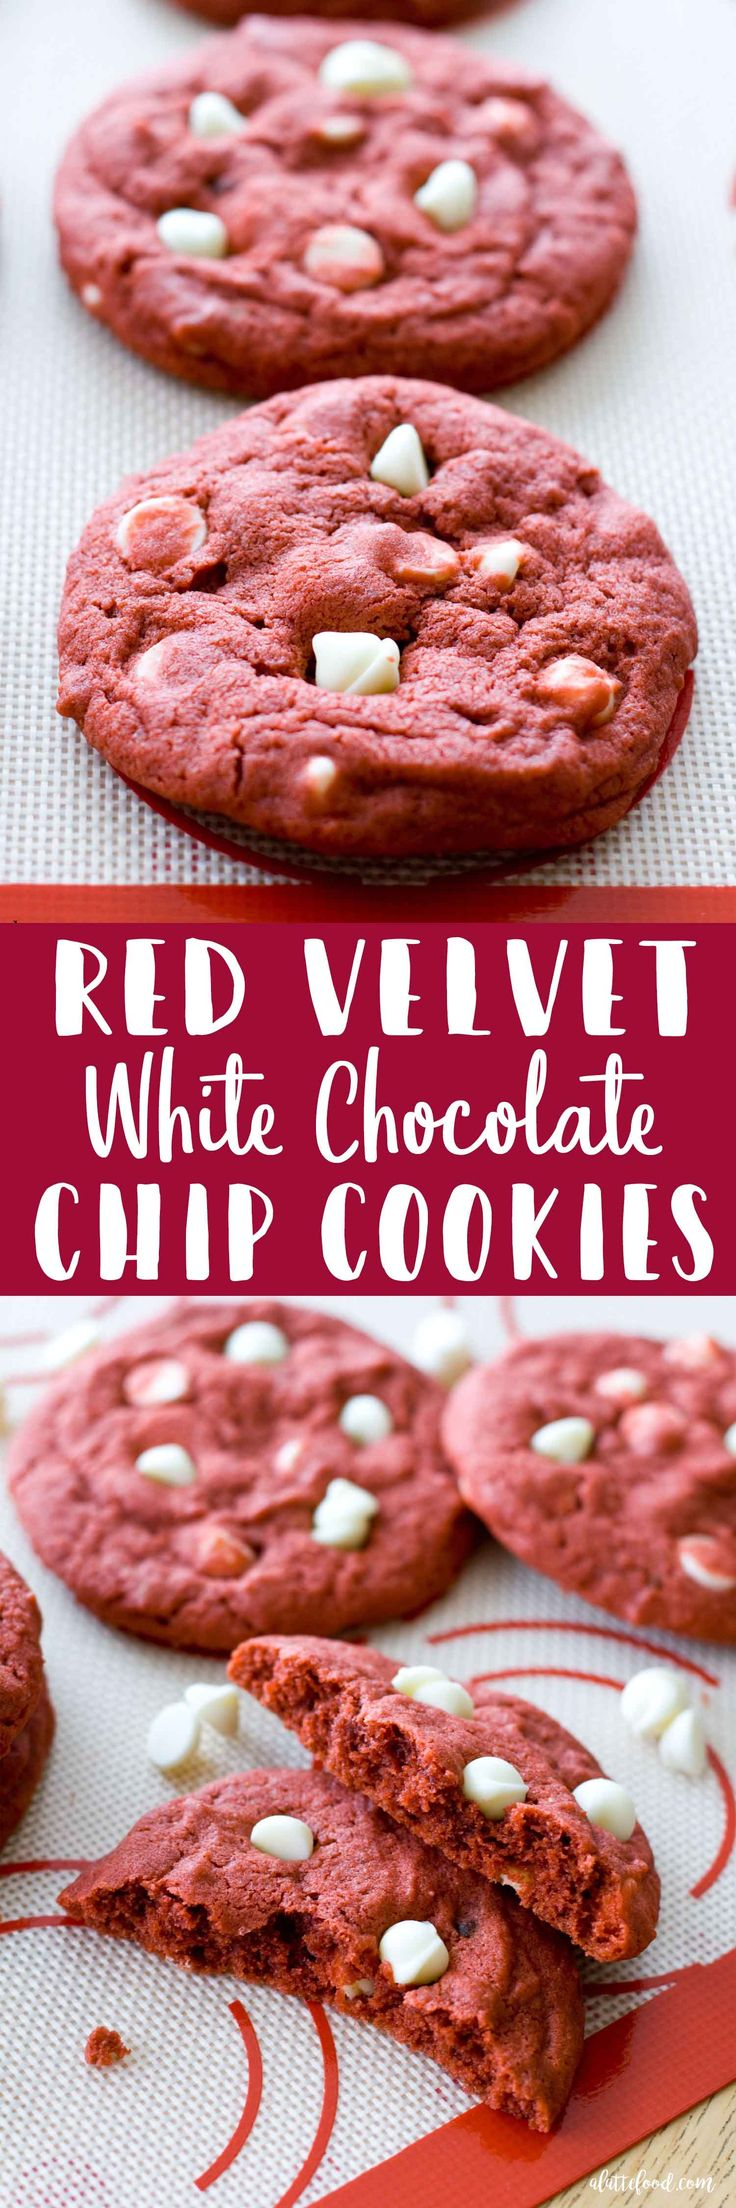 These Red Velvet White Chocolate Chip Cookies are a red velvet dream! All of the classic red velvet cake flavors are inside of a thick, chewy, rich chocolate chip cookie. One bite and you are sure to be in red velvet cookie heaven!